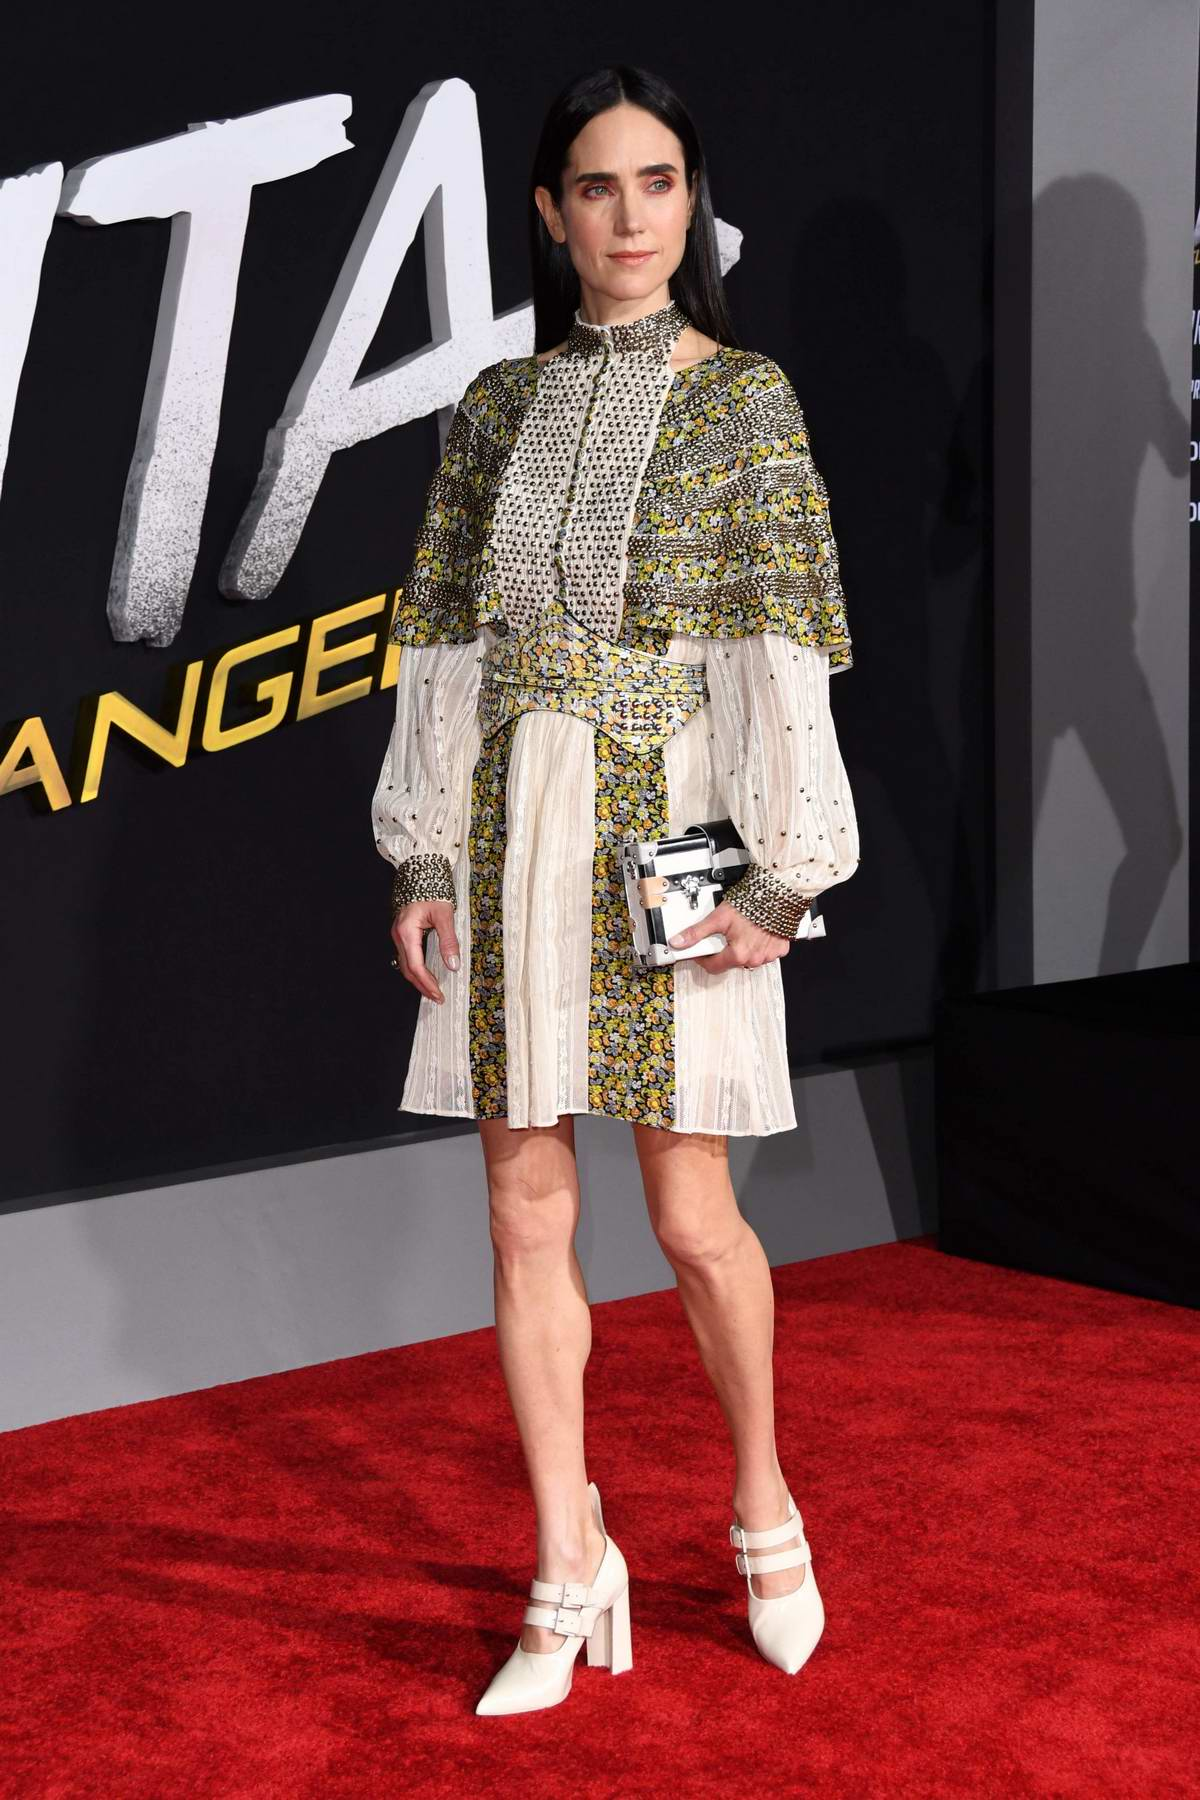 Jennifer Connelly attends the World Premiere of 'Alita: Battle Angel' at Westwood Regency Theater in Los Angeles